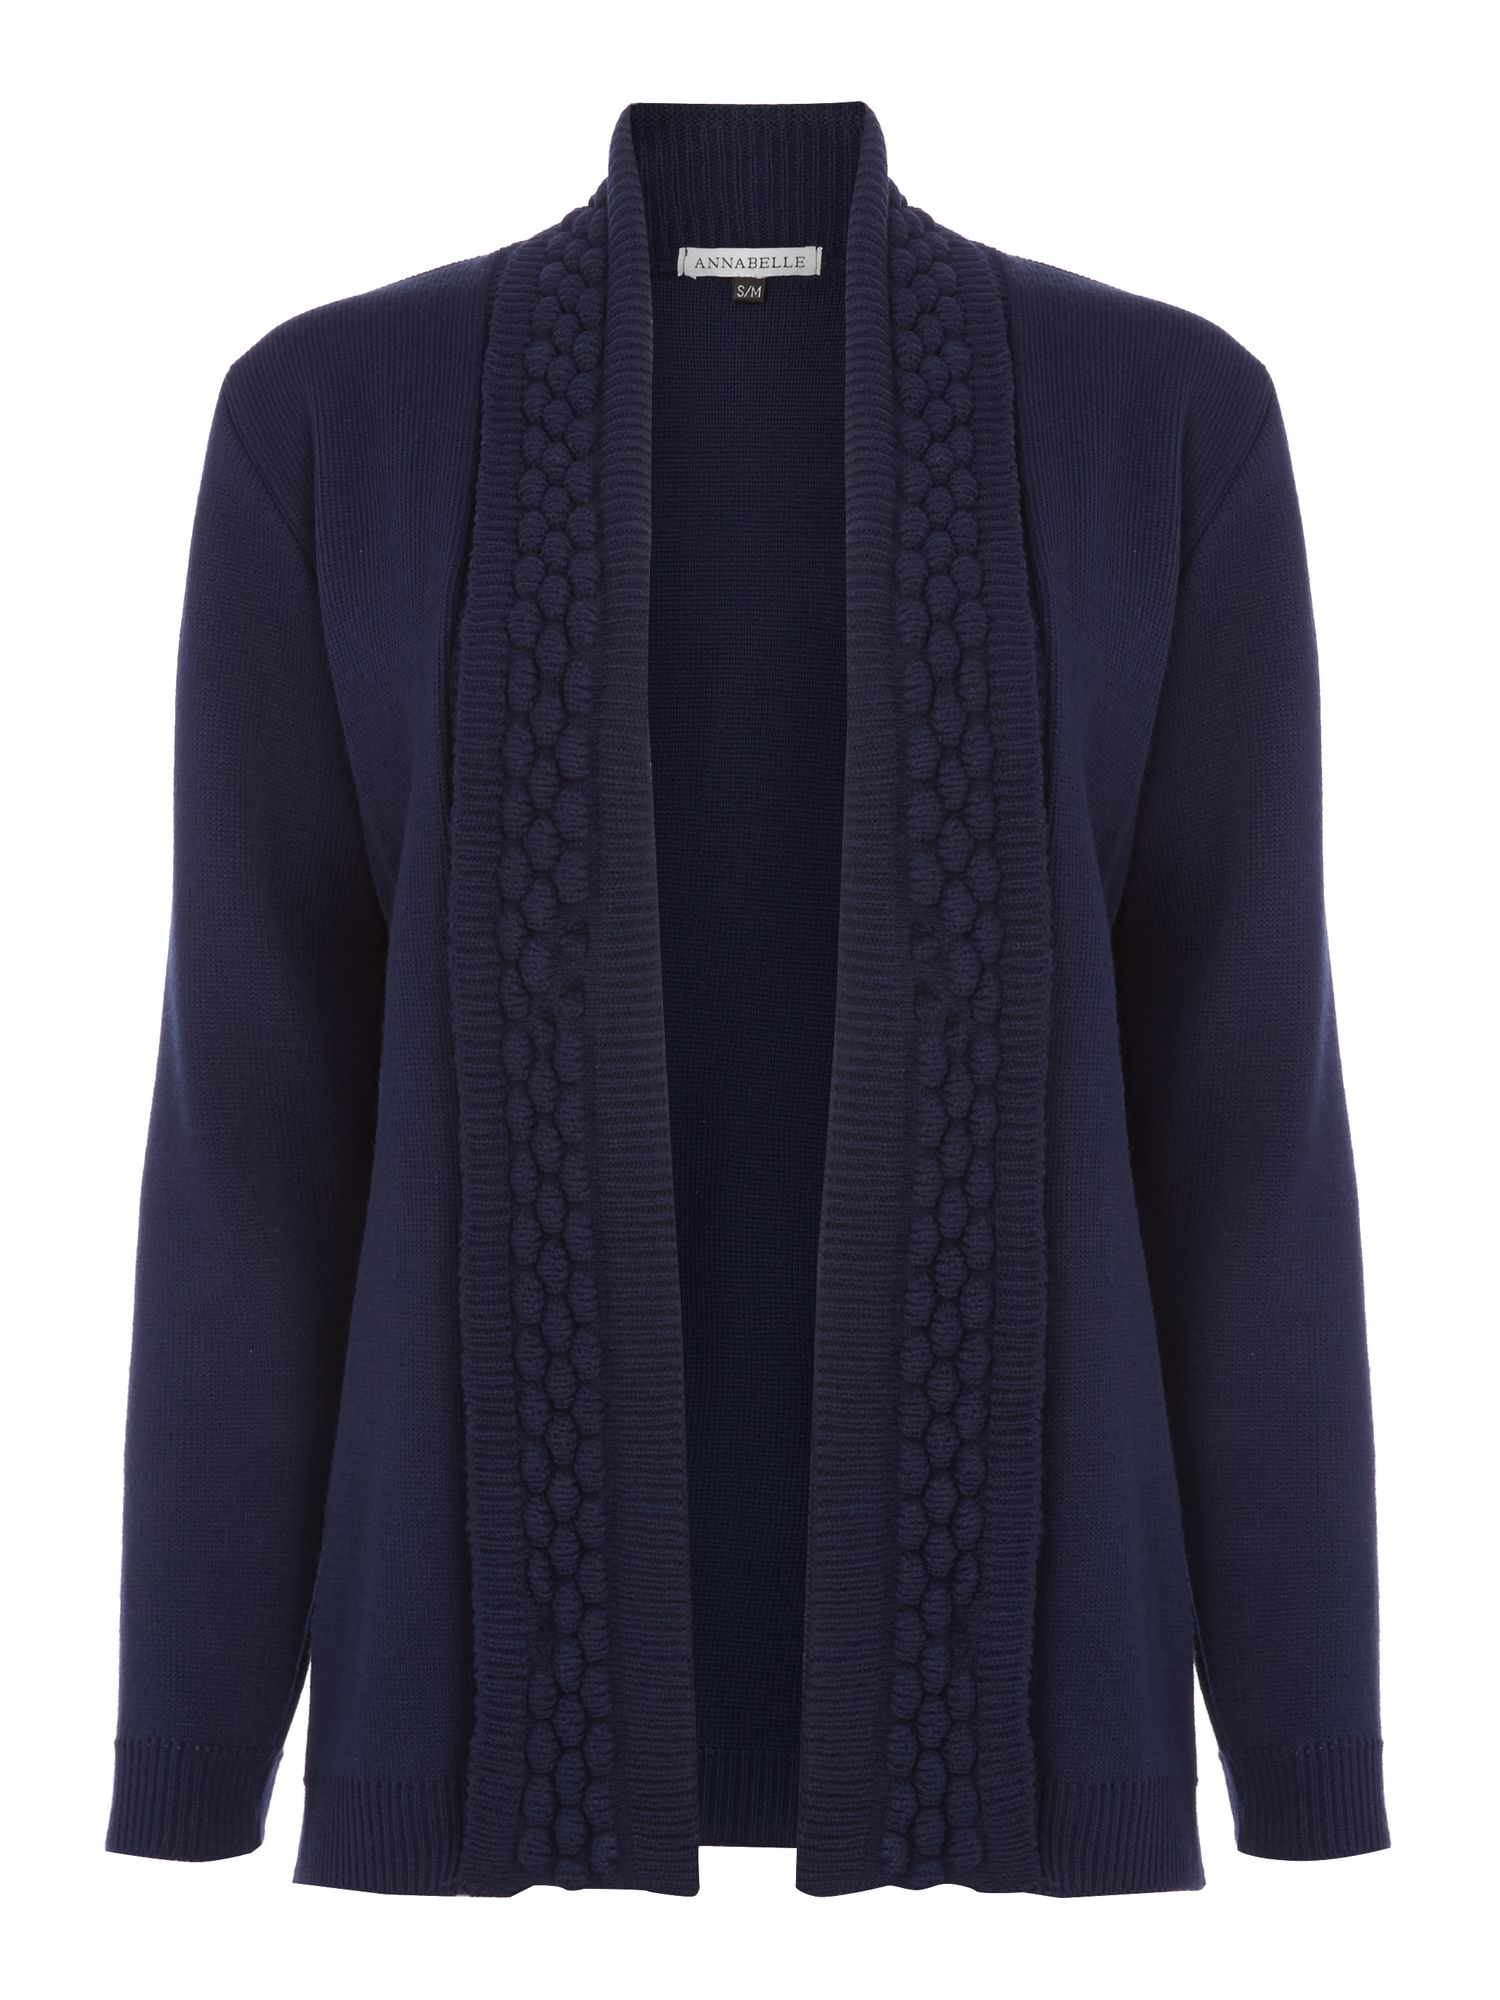 Annabelle Annabelle Knitted Cardigan, Navy